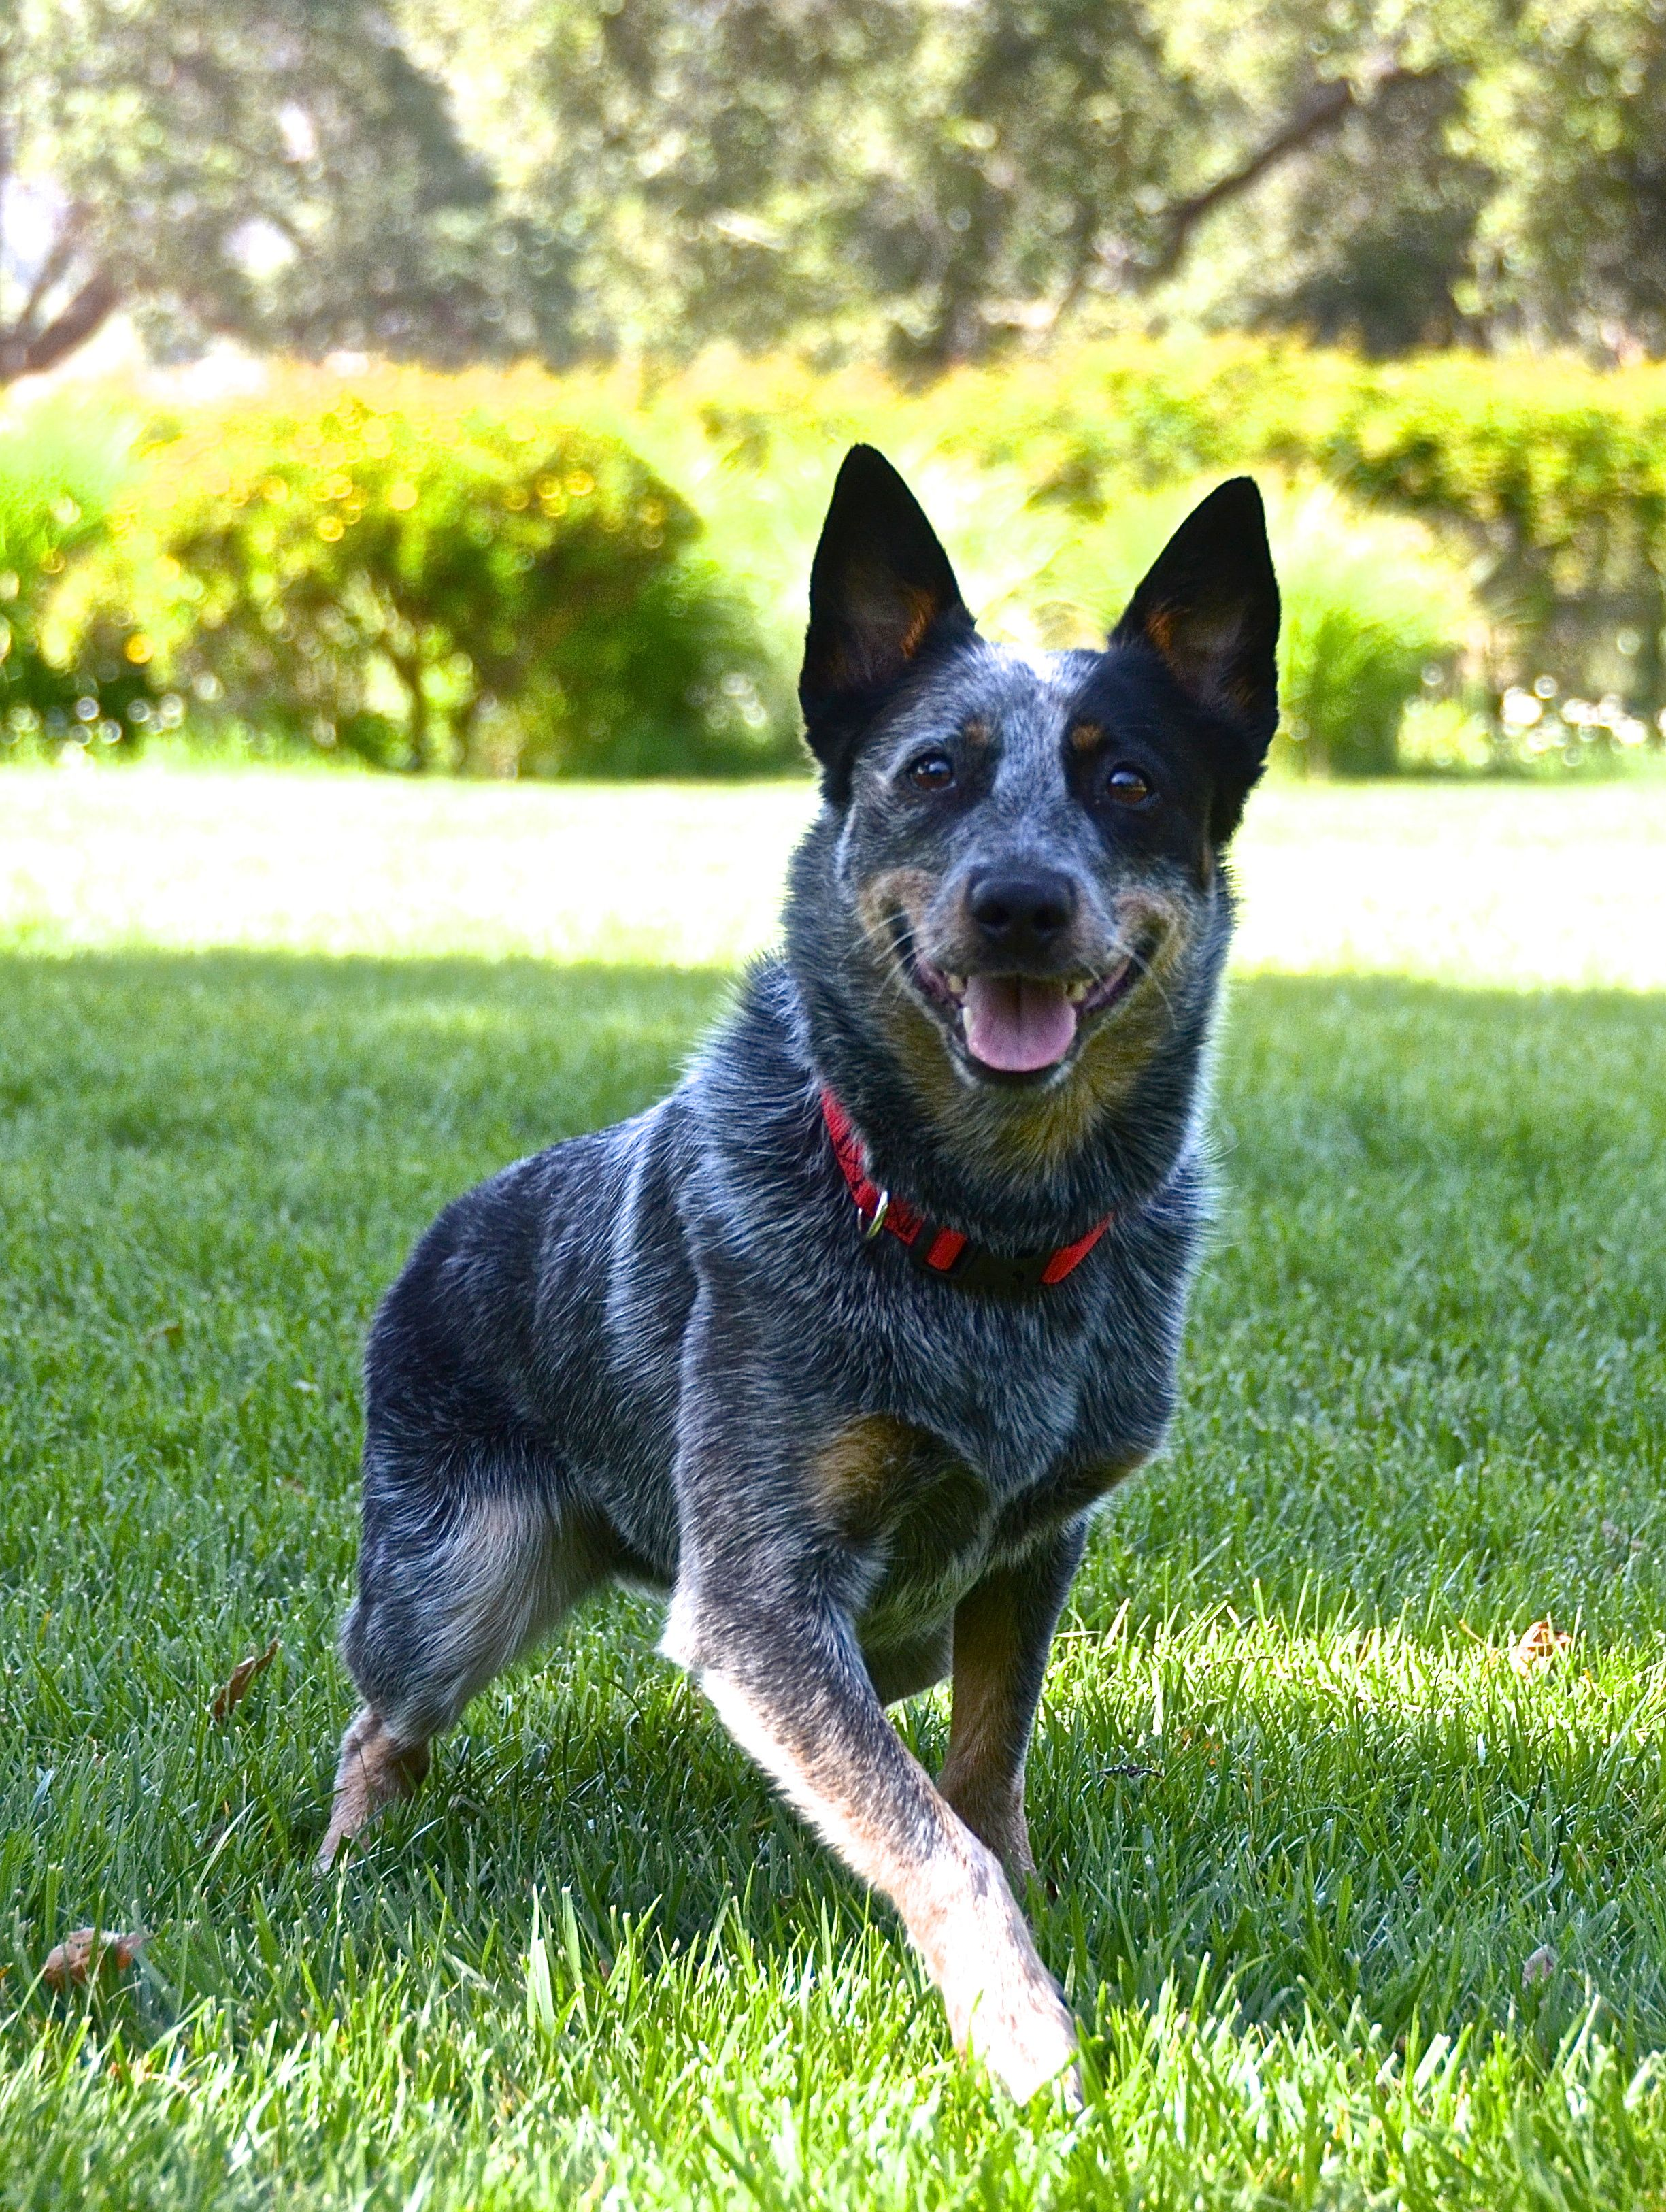 Pin By Laurie Nykaza On Dog Love Austrailian Cattle Dog Blue Heeler Dogs Dogs